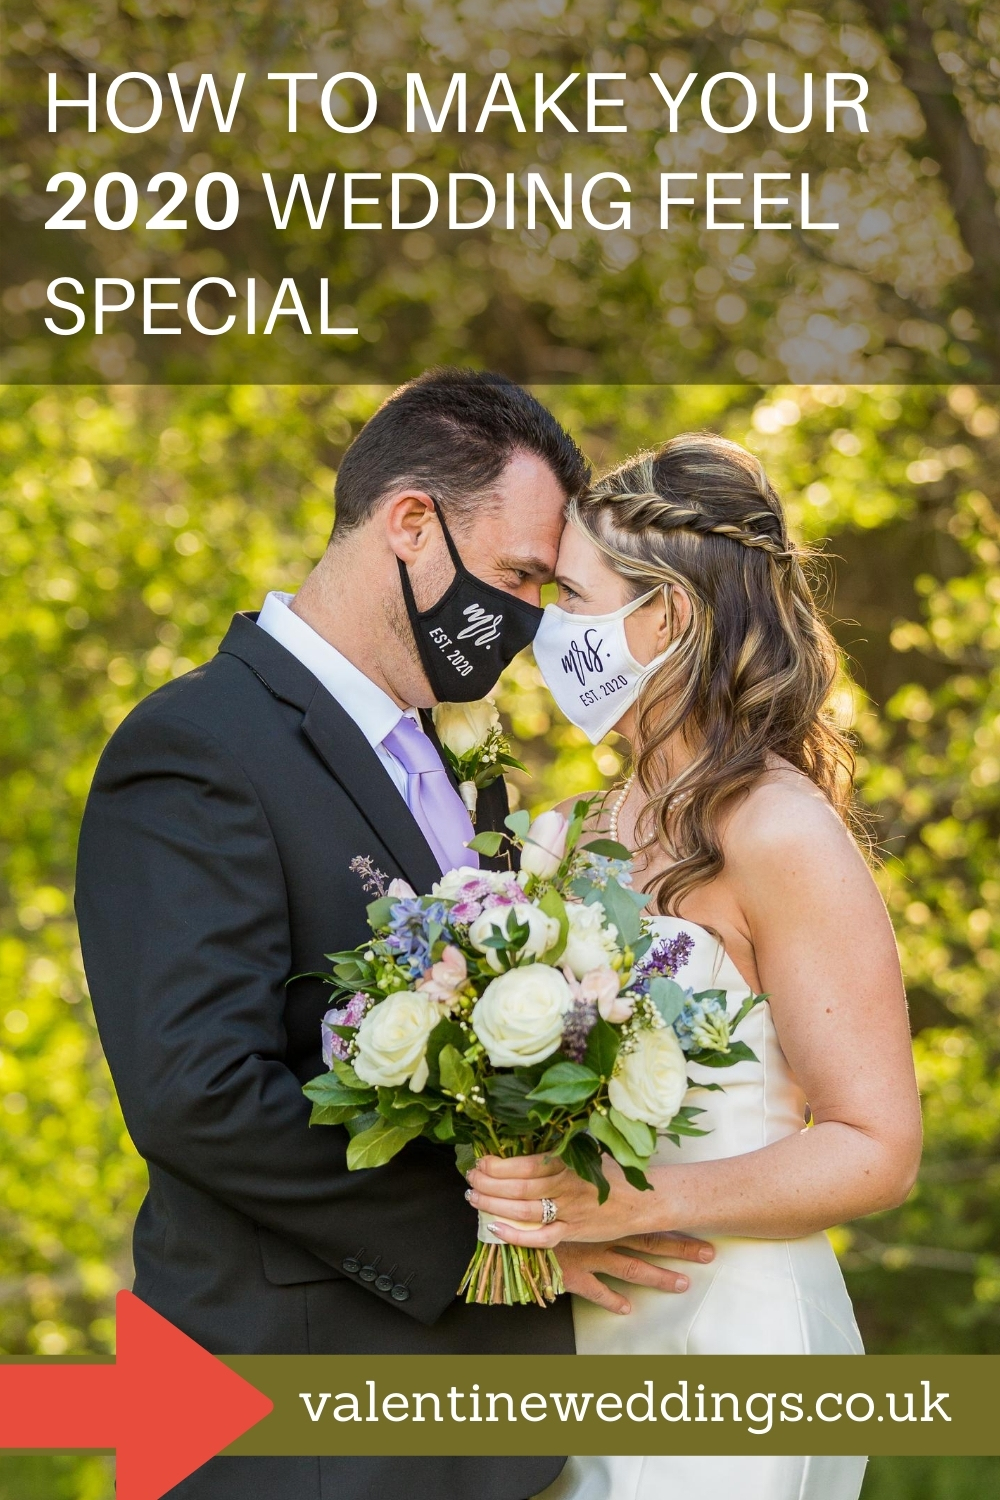 Special offers on UK Lockdown Wedding 2020